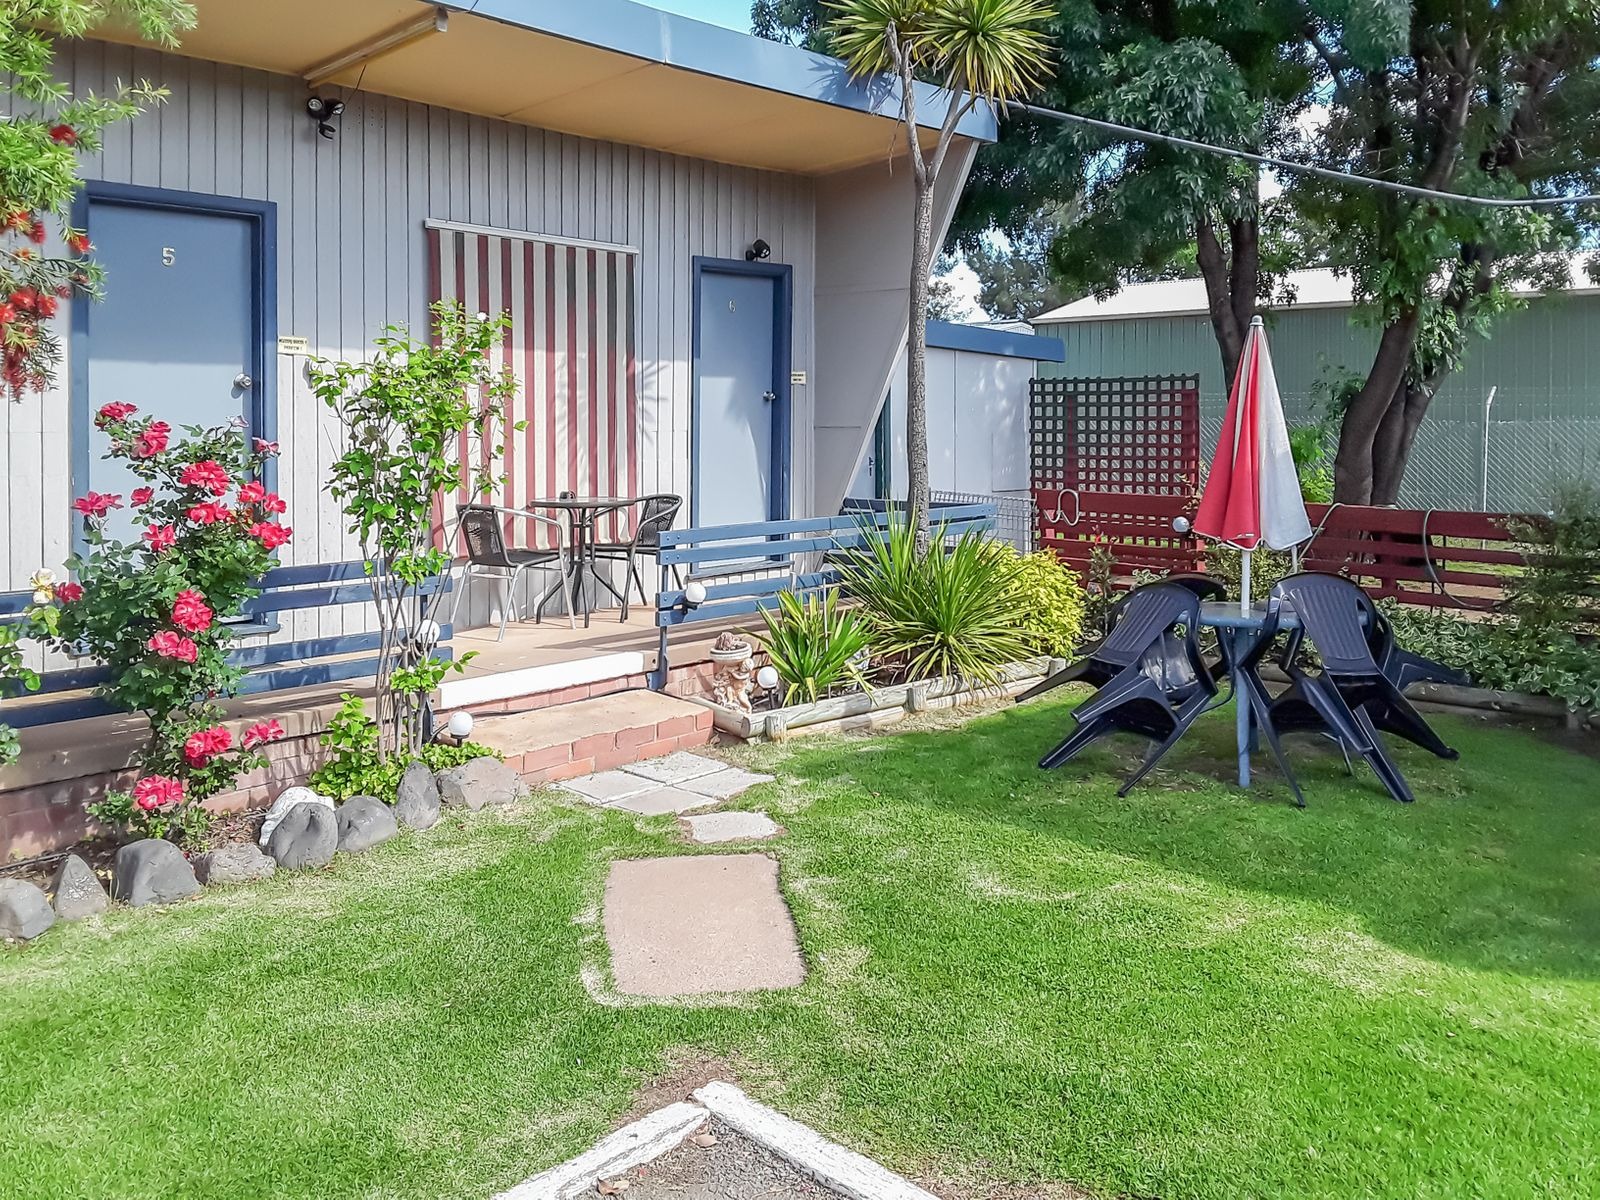 10-14 Campbell Street, Coolah, NSW 2843